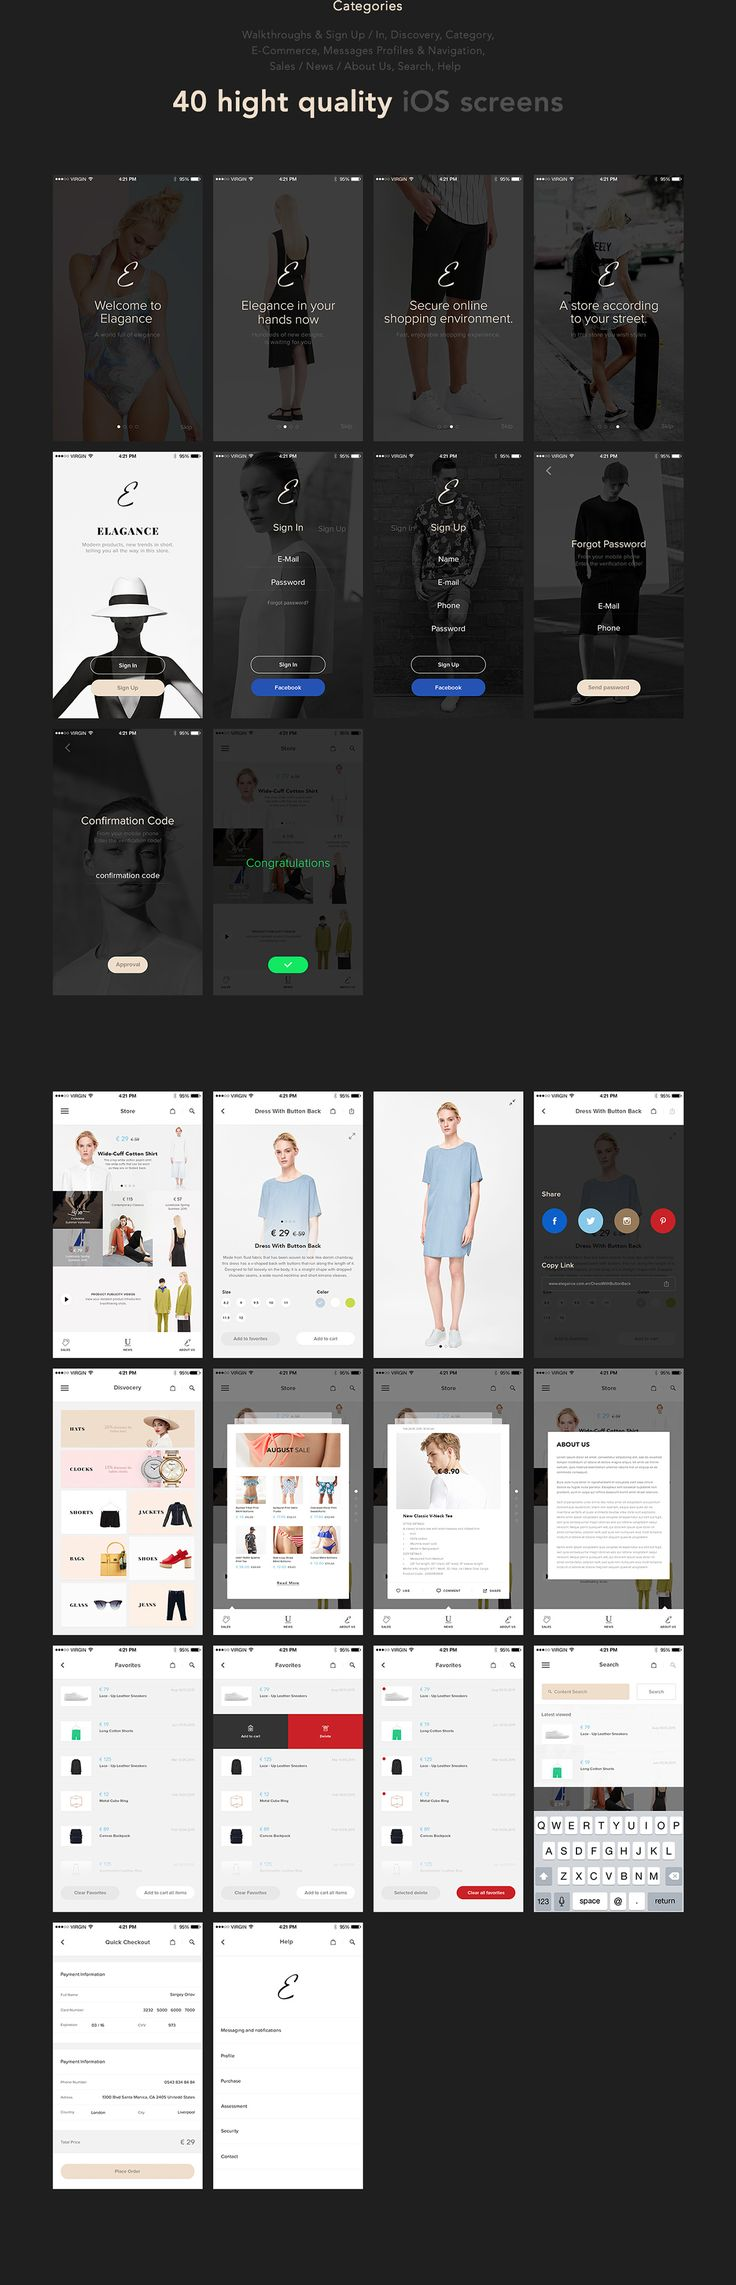 Elegance iOS UI Kit on App Design Served